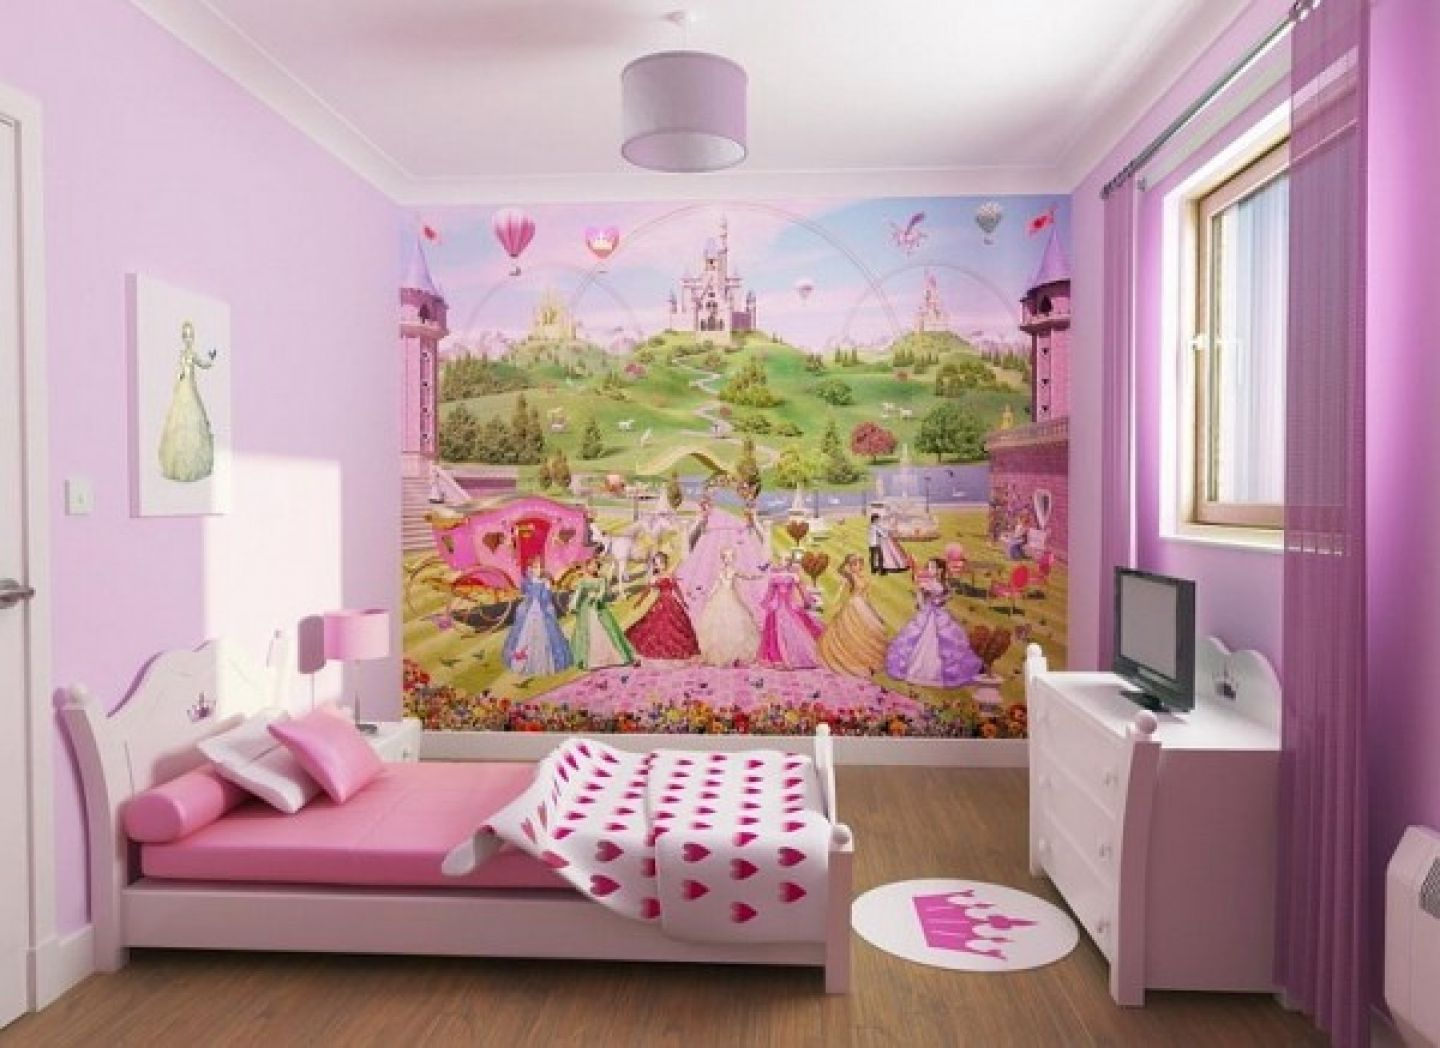 Girls Bedroom Decorating Ideas Amazing Girls' Bedroom Style  Bedrooms Small Bedroom Decorating And Room Design Decoration